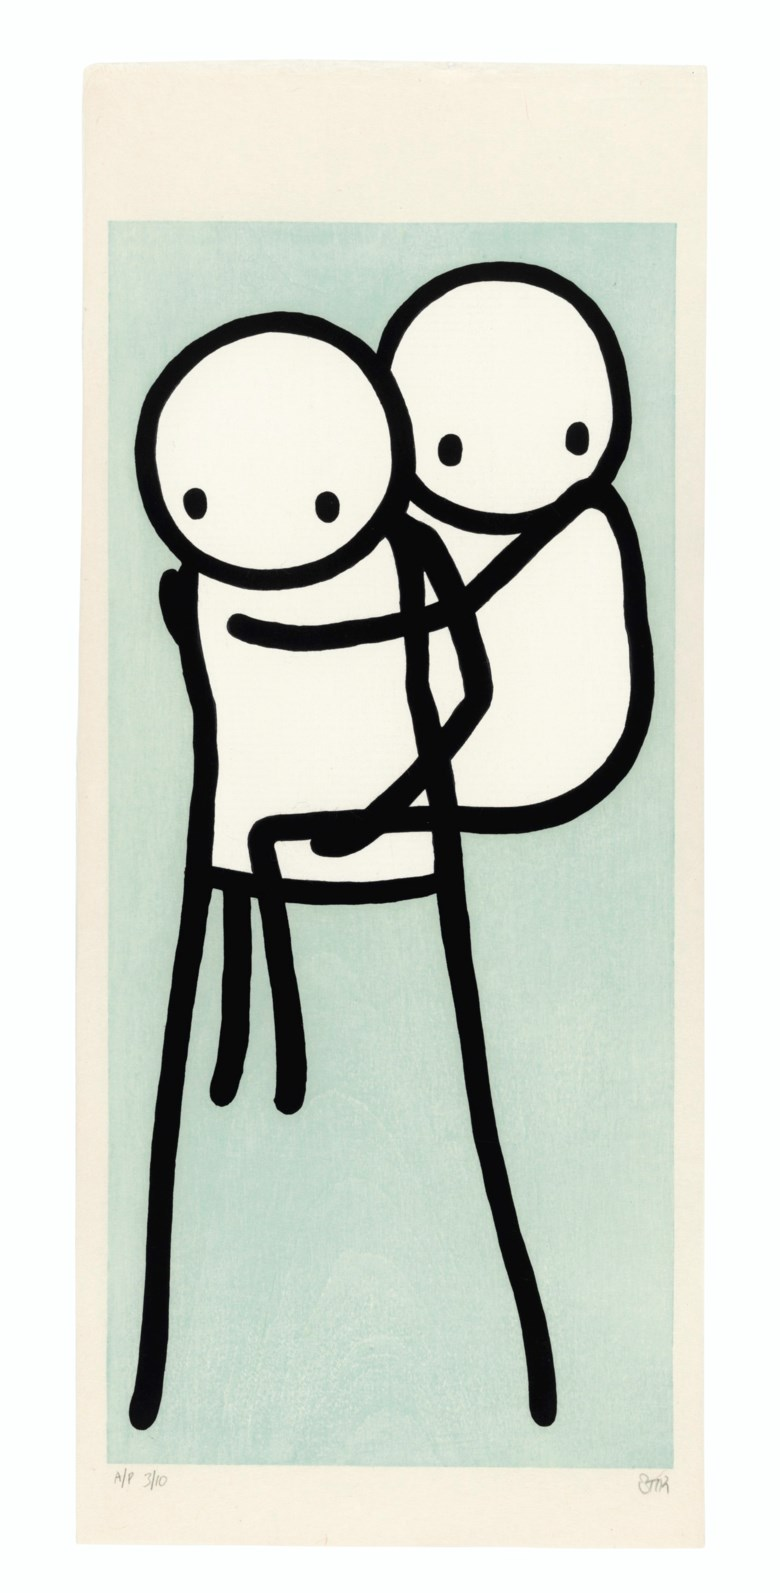 Stik (b. 1979), Onbu (Piggyback) (Blue), 2013. Ukiyo-e woodcut in black, white and blue on laid rice paper. Block 395 x 180  mm. Sheet 478 x 200  mm. Estimate £7,000-10,000. Offered in Prints & Multiples on 18 March 2020 at Christie's in London